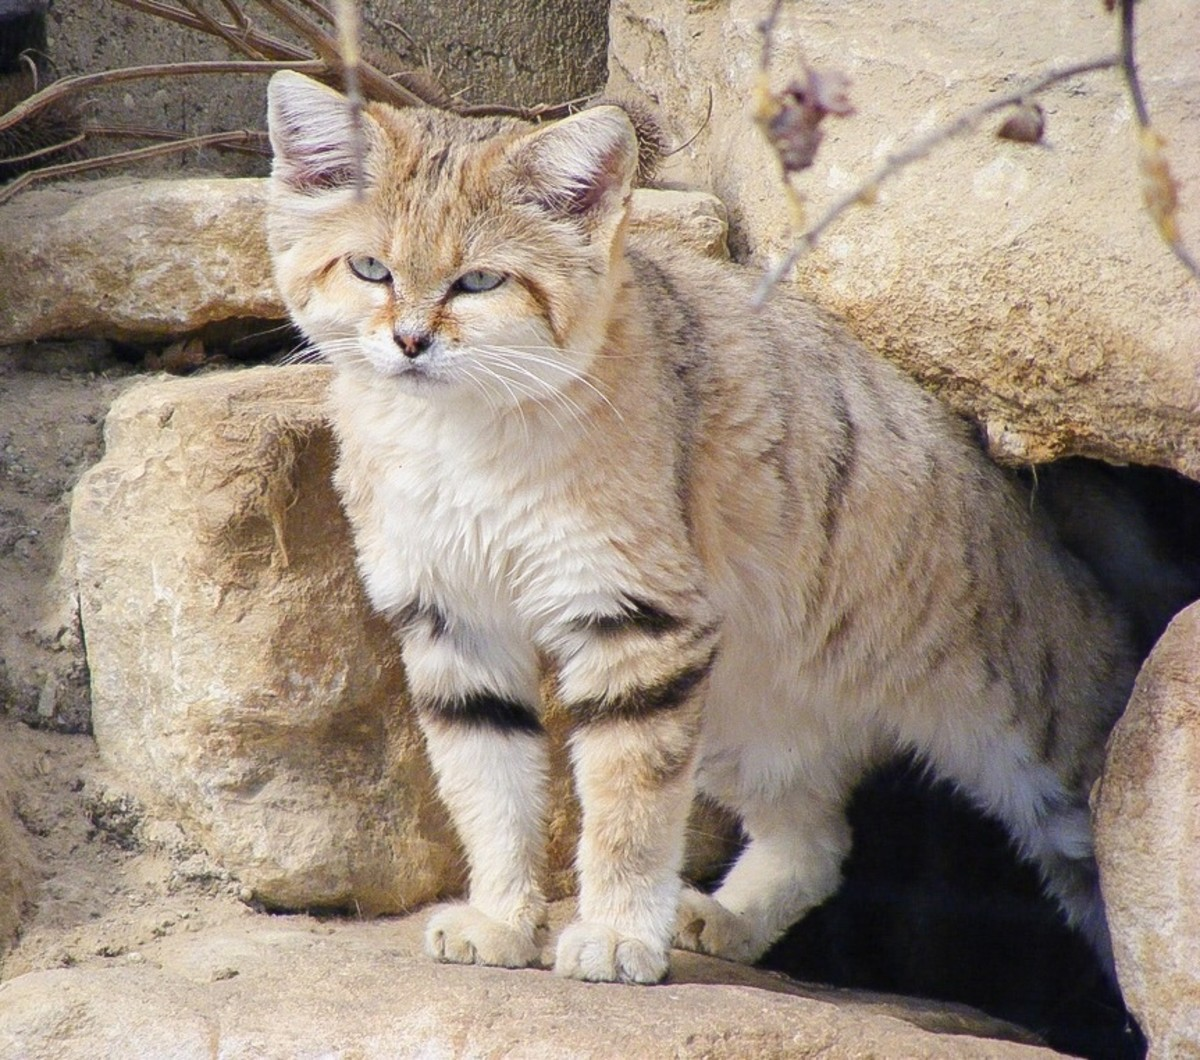 A sand cat in captivity